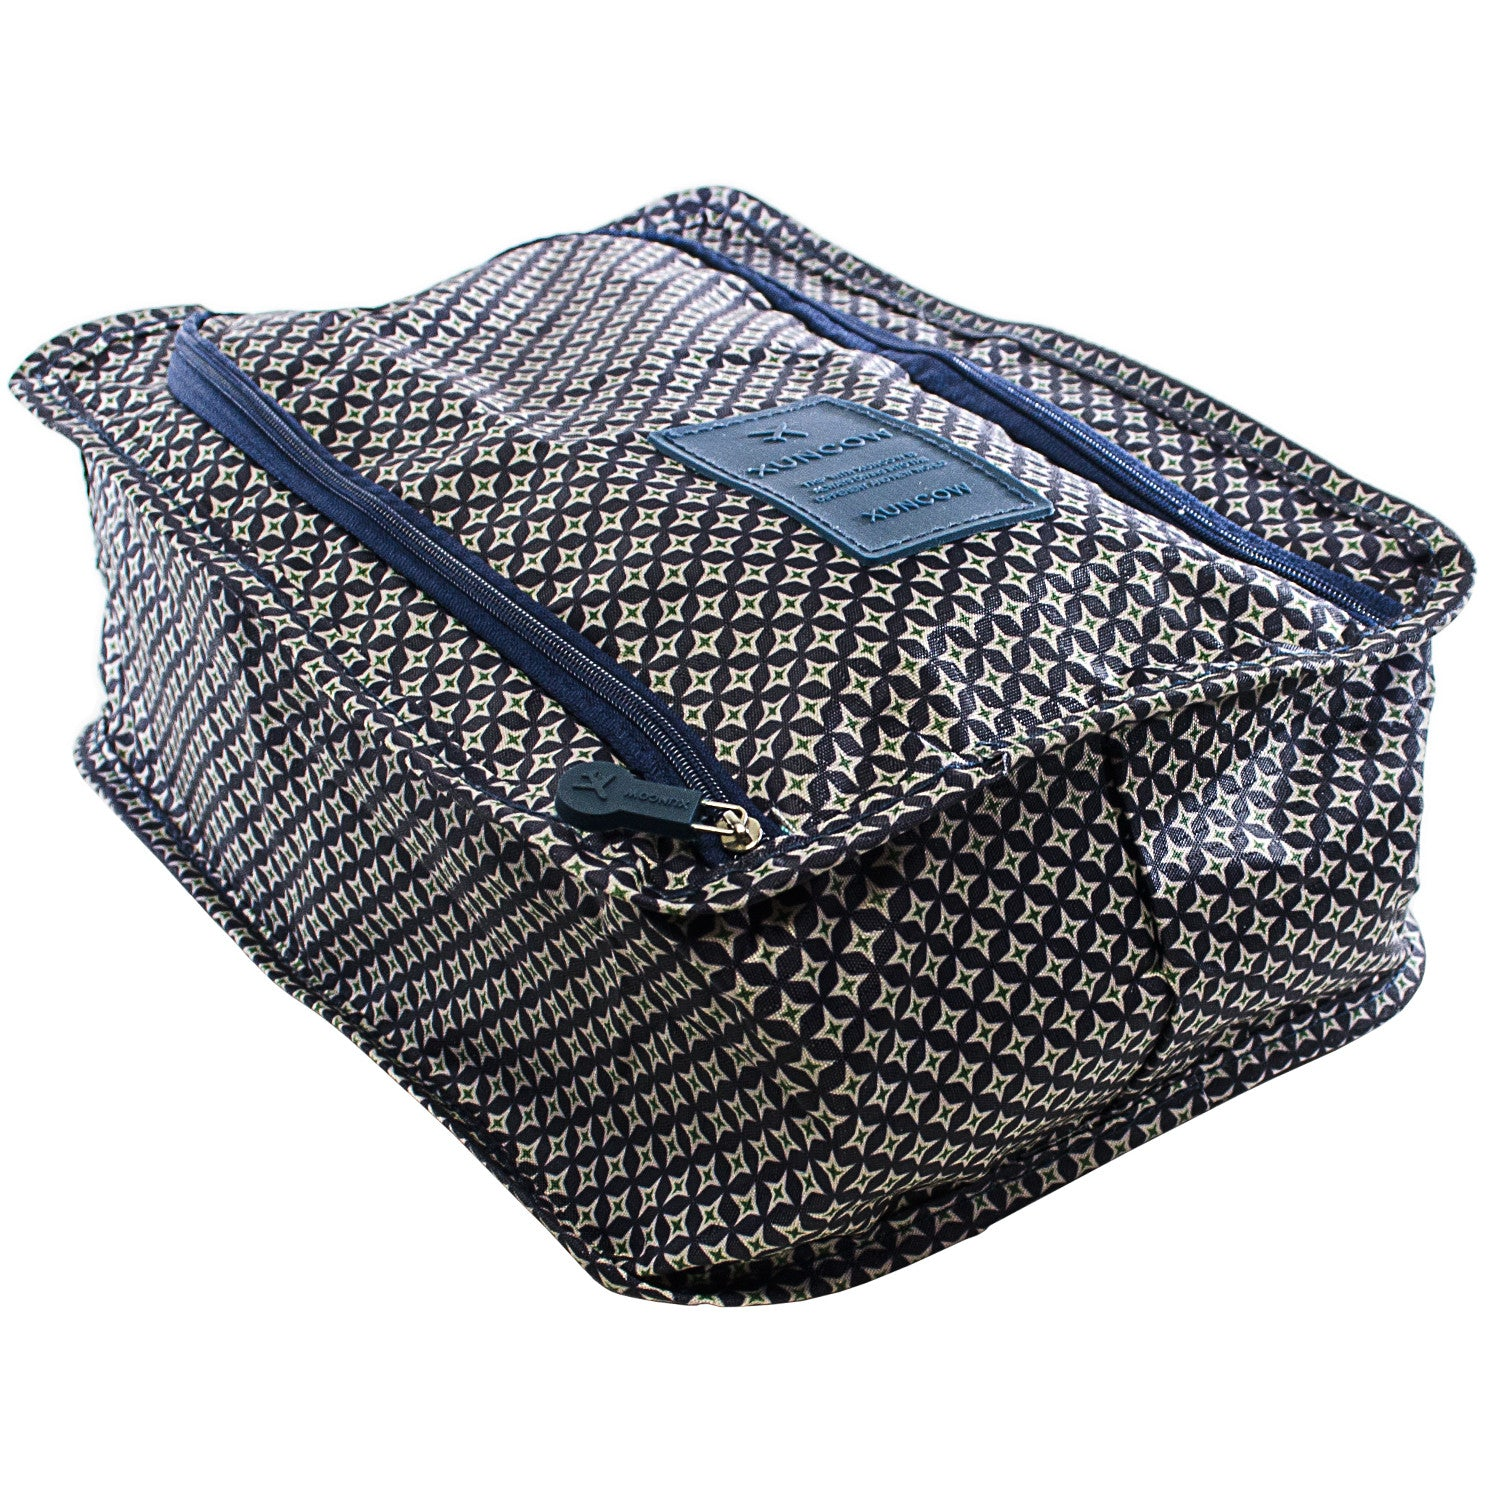 GOSO Travel Shoe Bag Waterproof Polyester Fabric Shoe Storage and Shoe  Organizer d9f96e3ef07b9